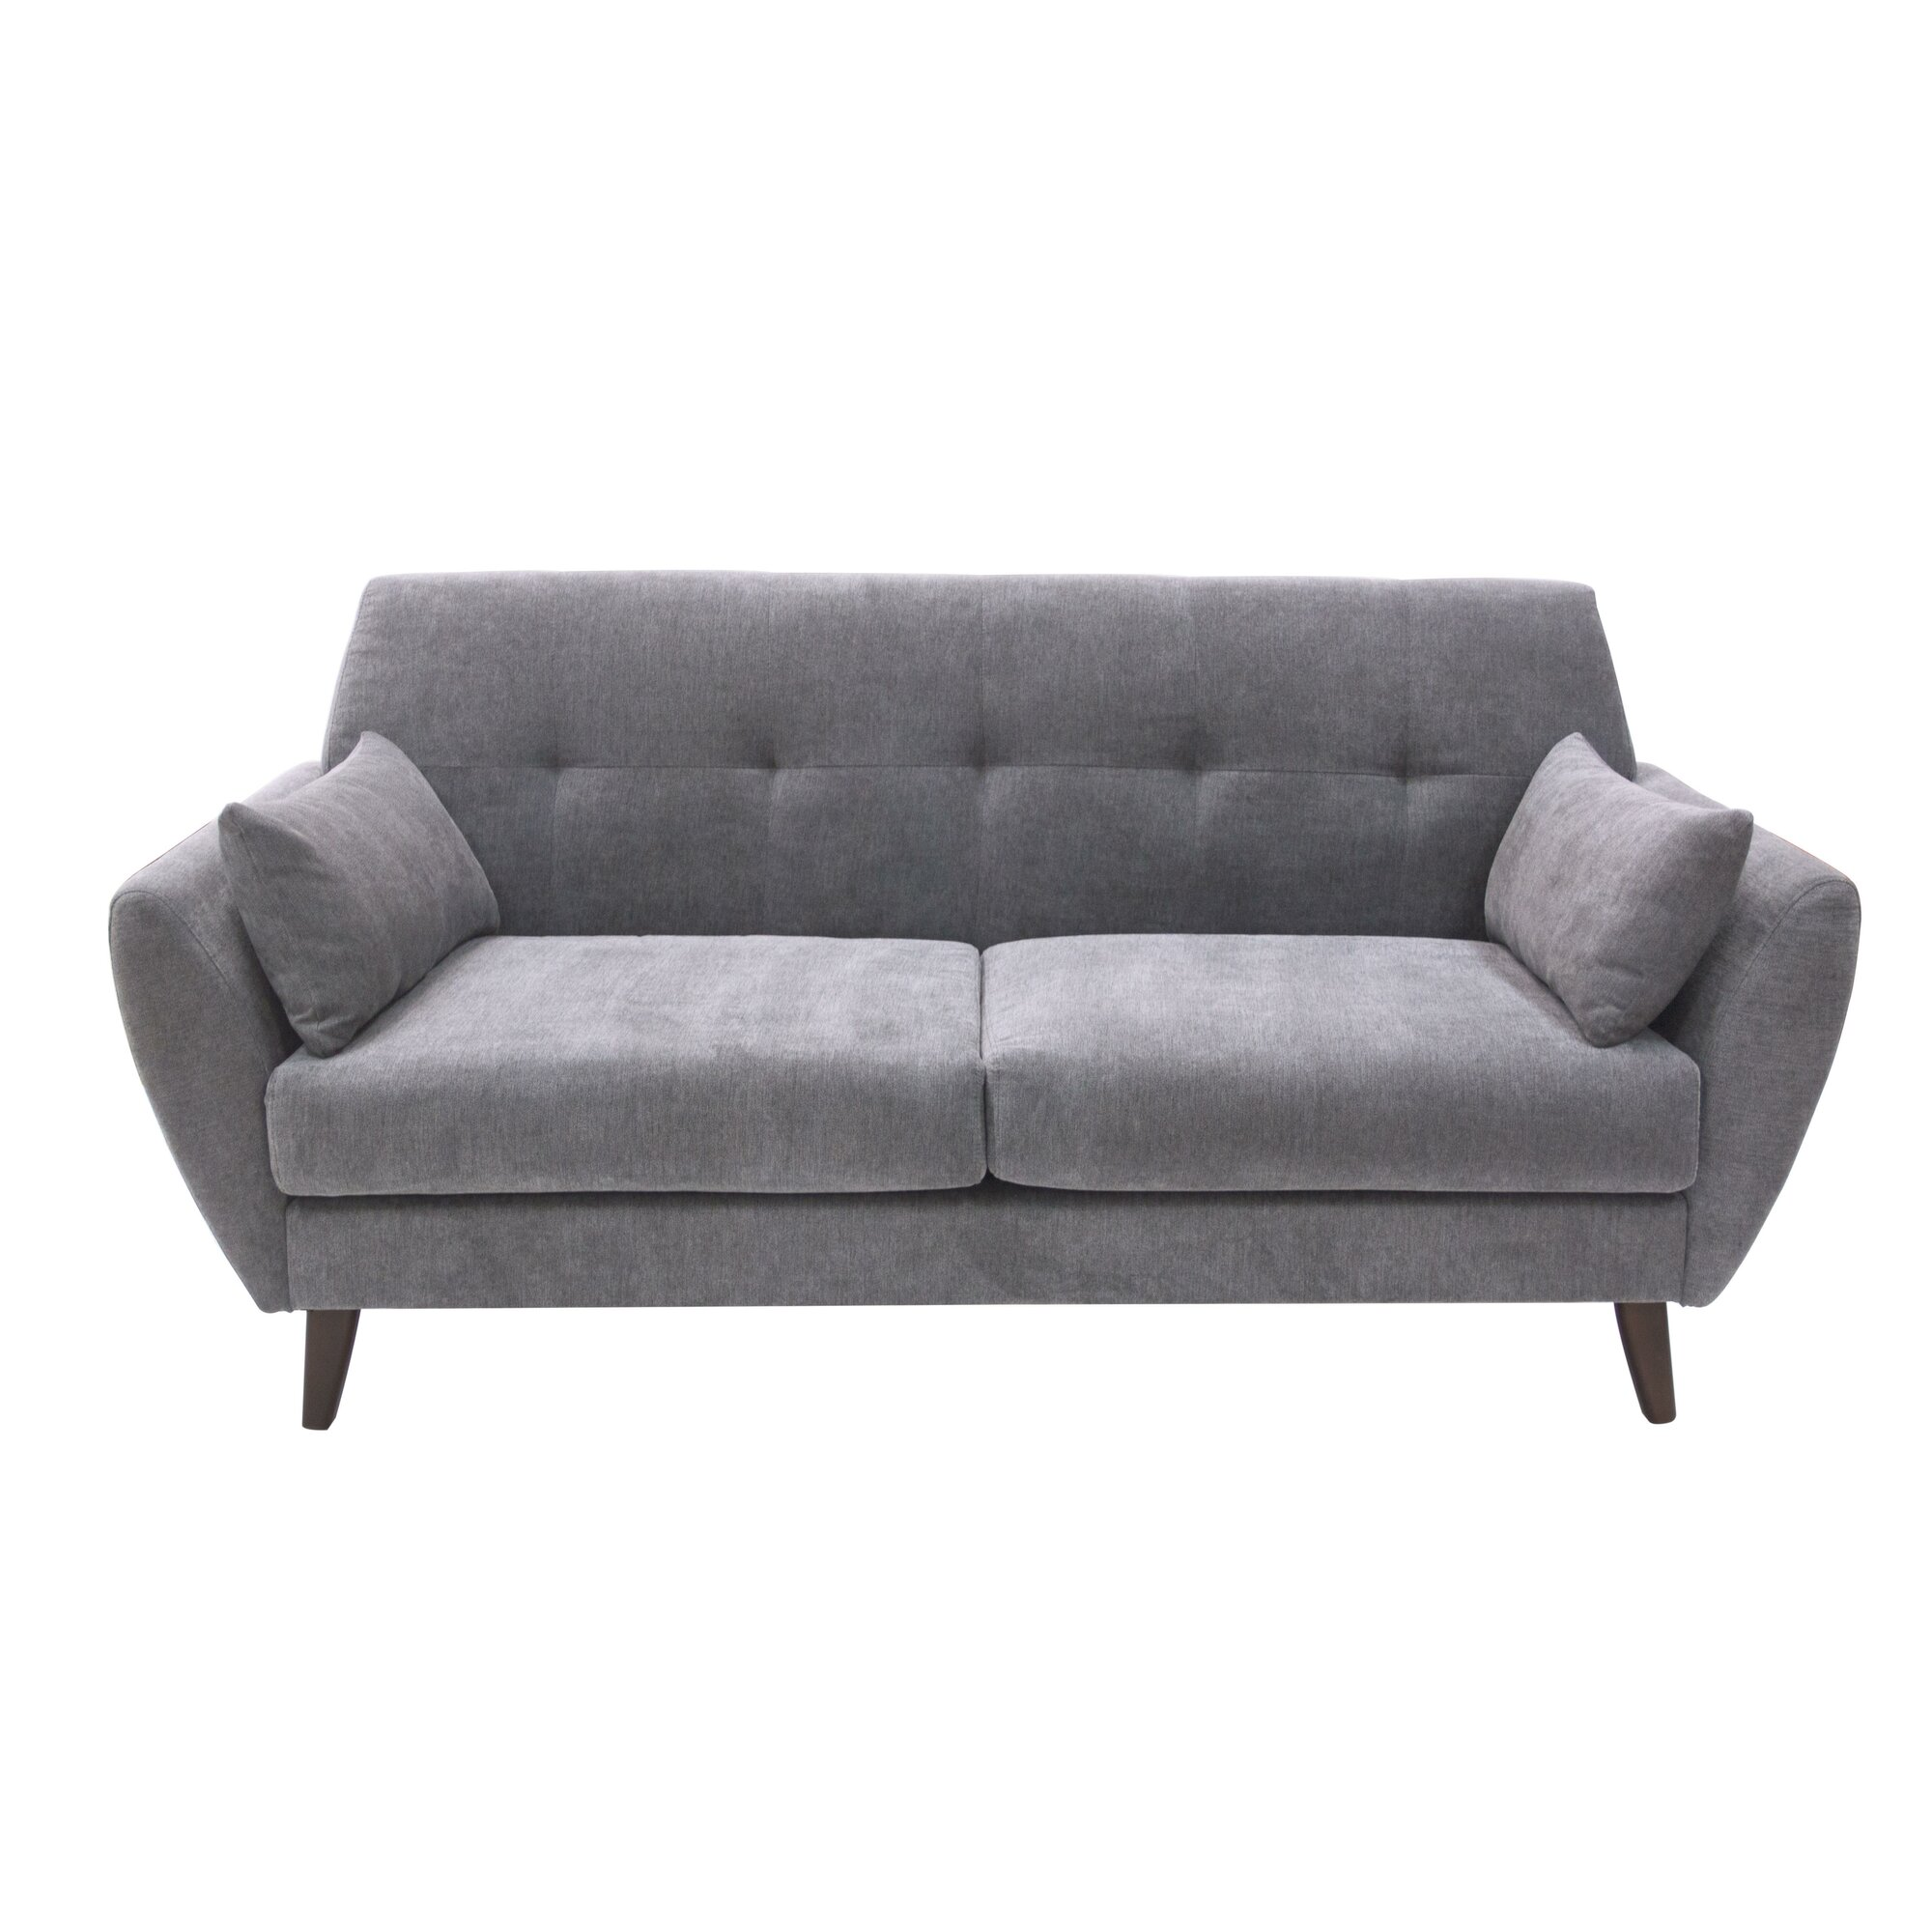 Mid Century Modern Sofas: Elle Decor Amelie Mid-Century Modern Sofa & Reviews